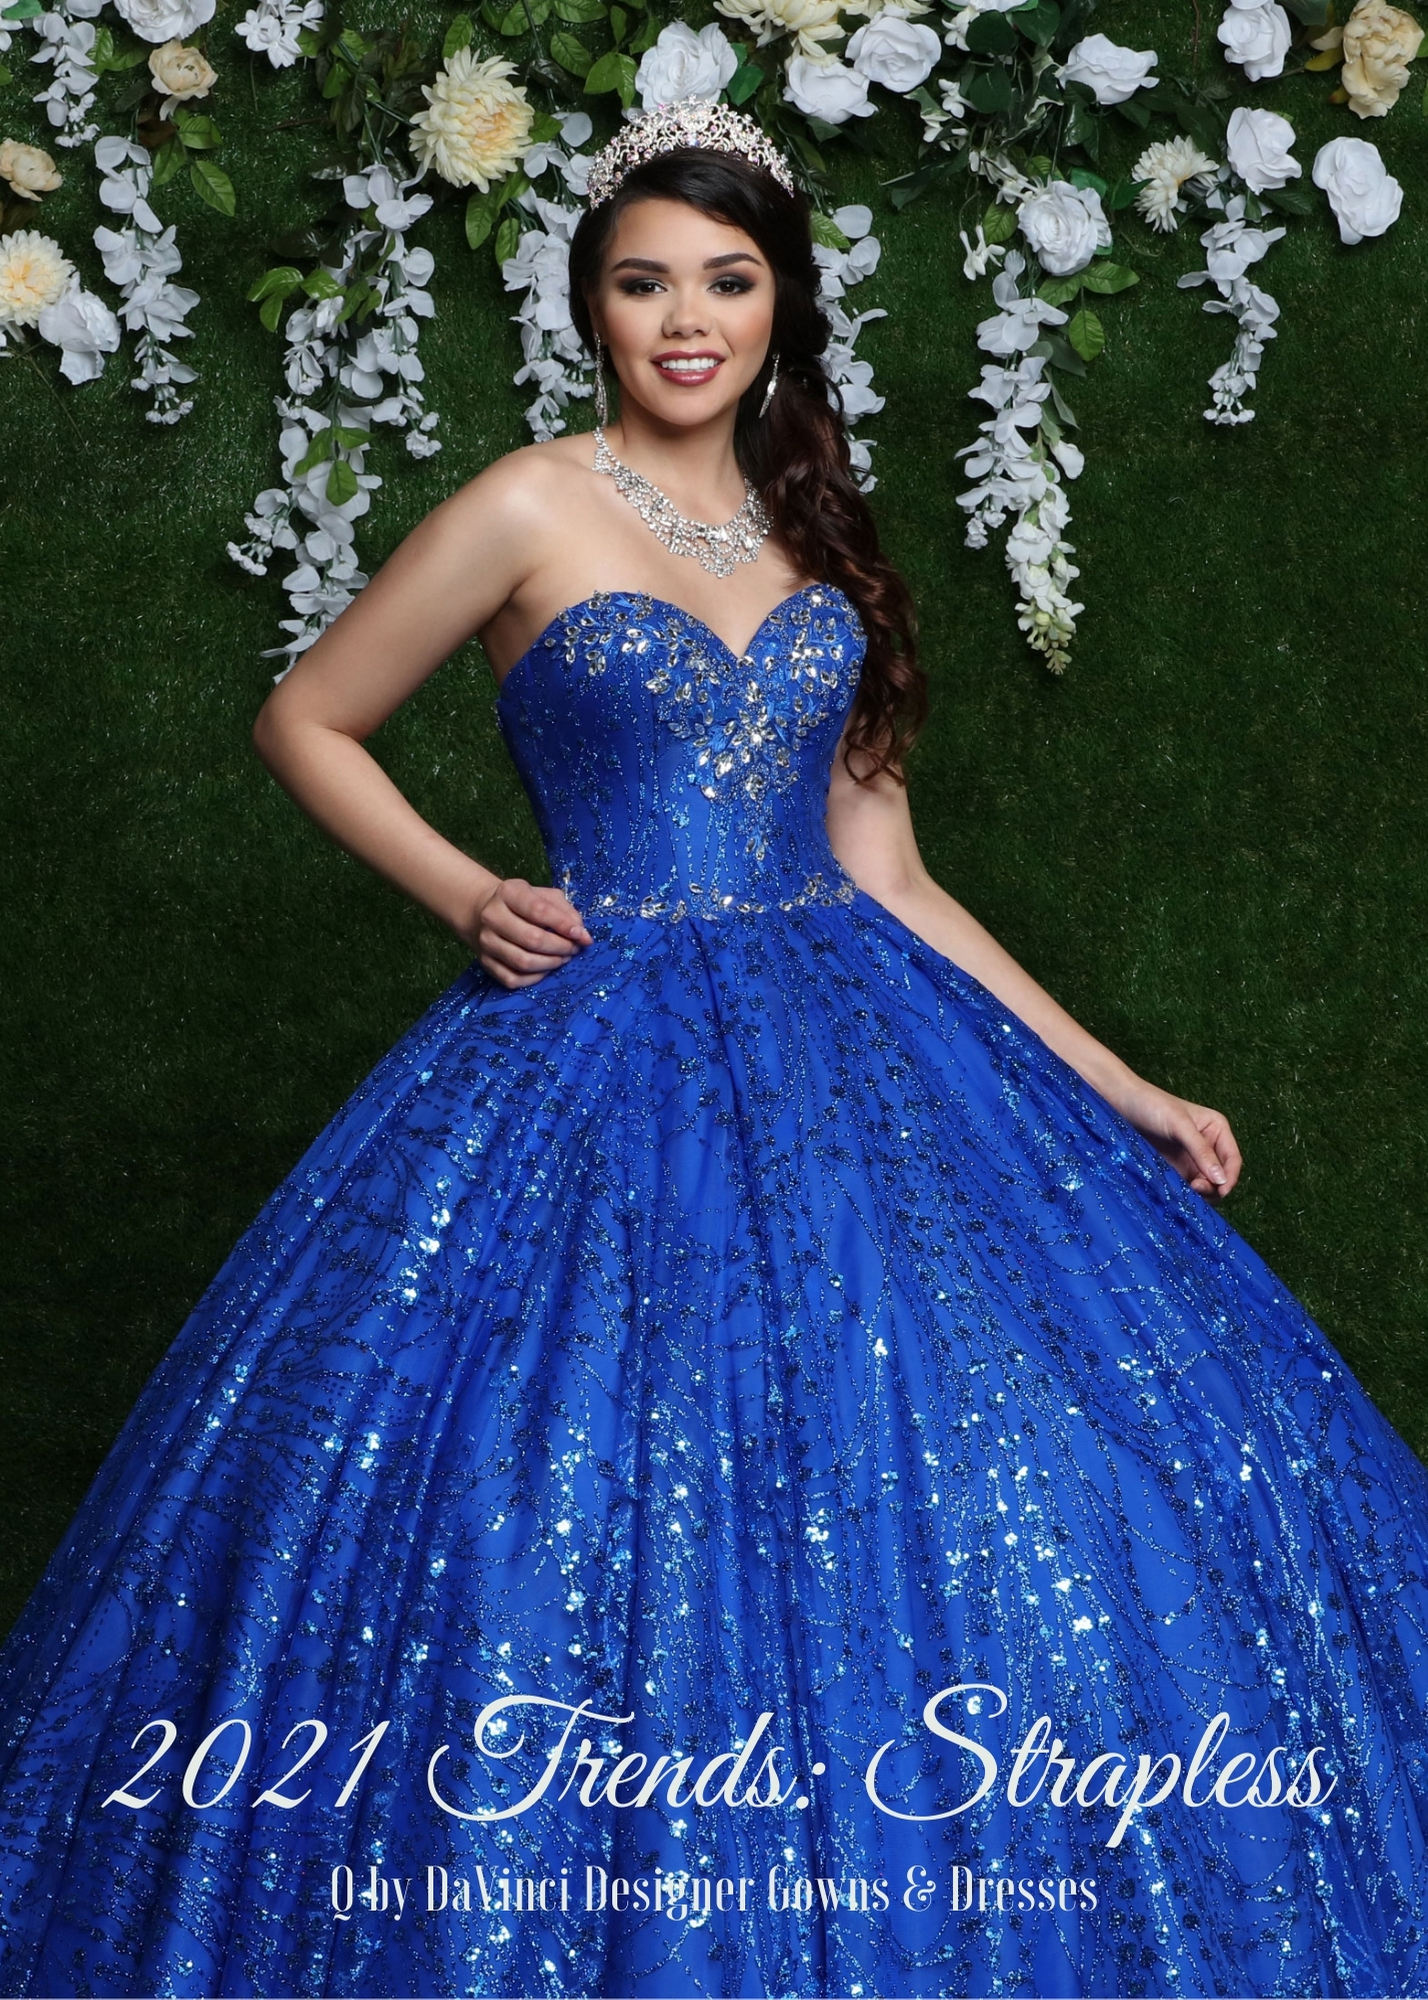 Quinceanera Style Trends 2021: Strapless Dresses